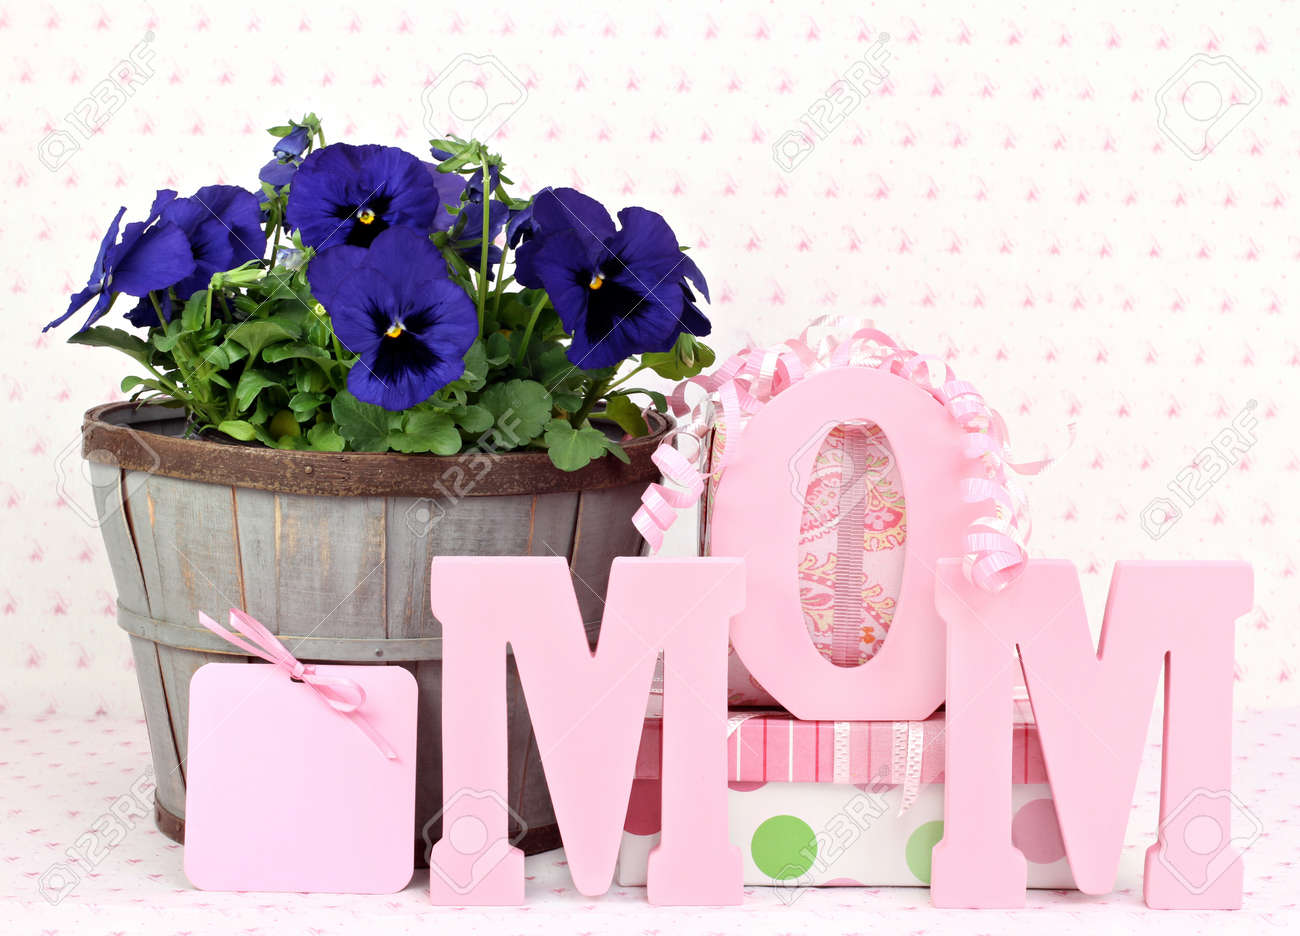 Beautiful pansys in a rustic basket, gifts, a gift card and Mom spelled out in wooden letters.  Great for Mom's birthday or Mothers Day. Stock Photo - 9440954